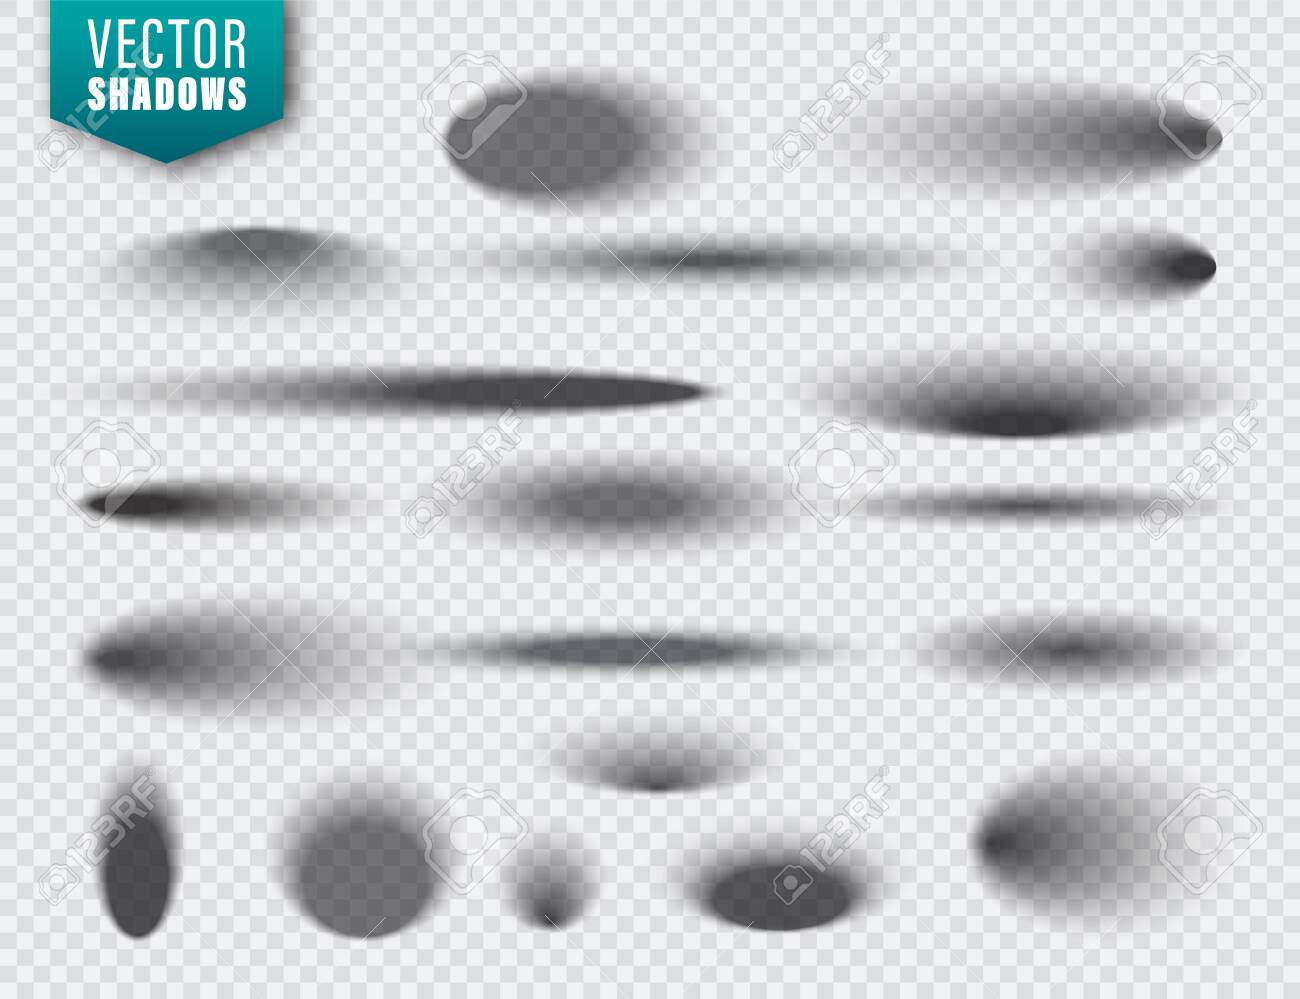 Vector shadows set on transparent background. Realistic isolated shadow. Vector illustration - 128183026